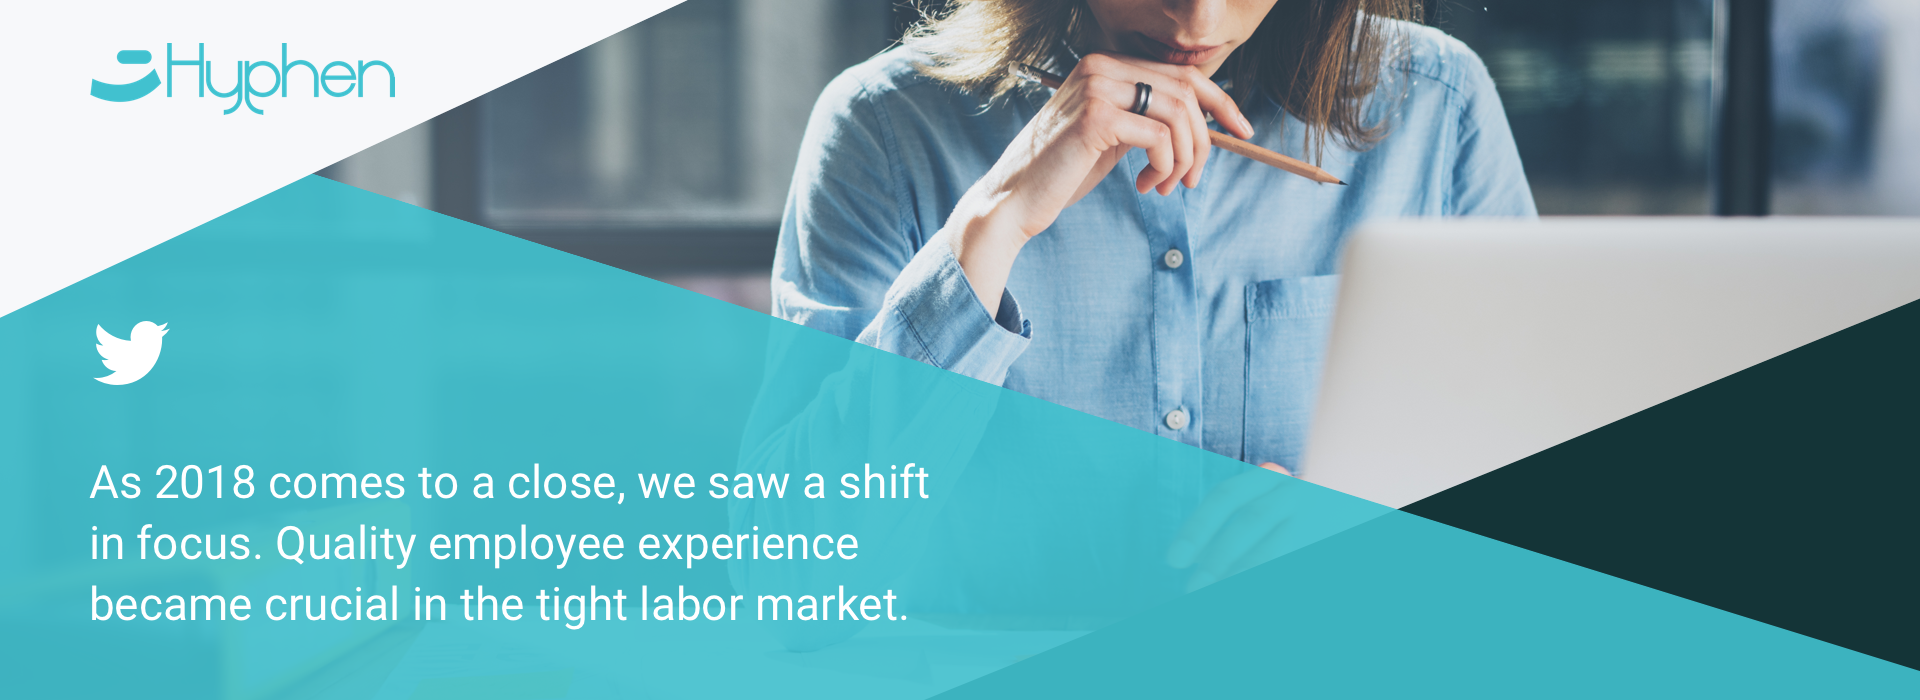 As 2018 comes to a close, we saw a shift in focus. Quality employee experience became crucial in the tight labor market.